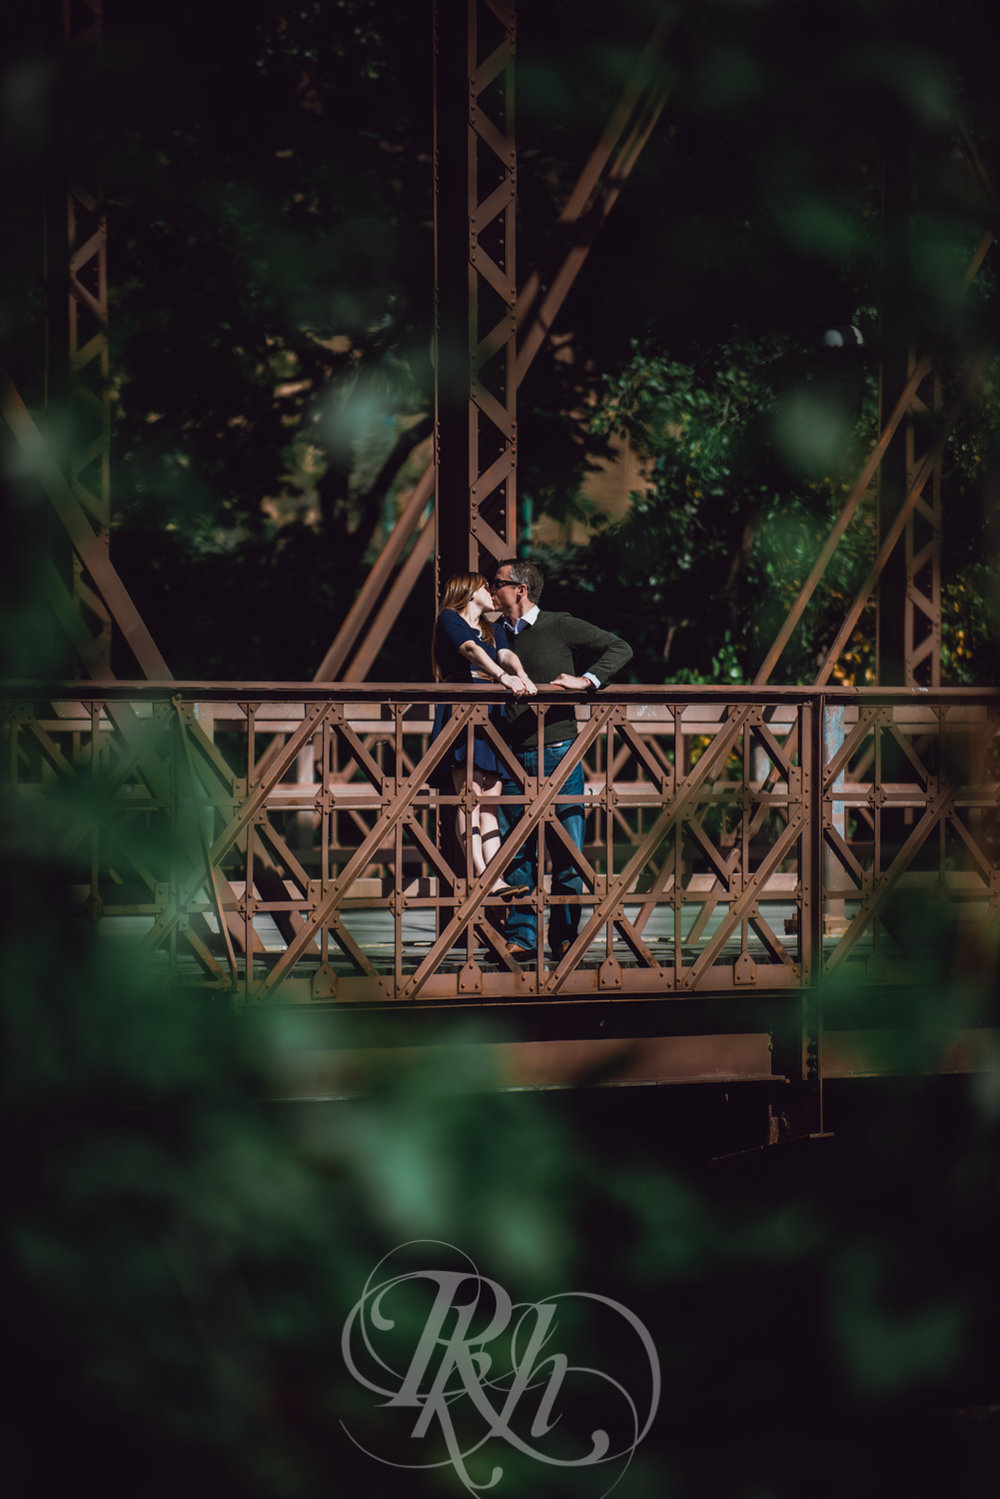 Bobbi & Graham - Minnesota Engagement Photography - RKH Images -7.jpg